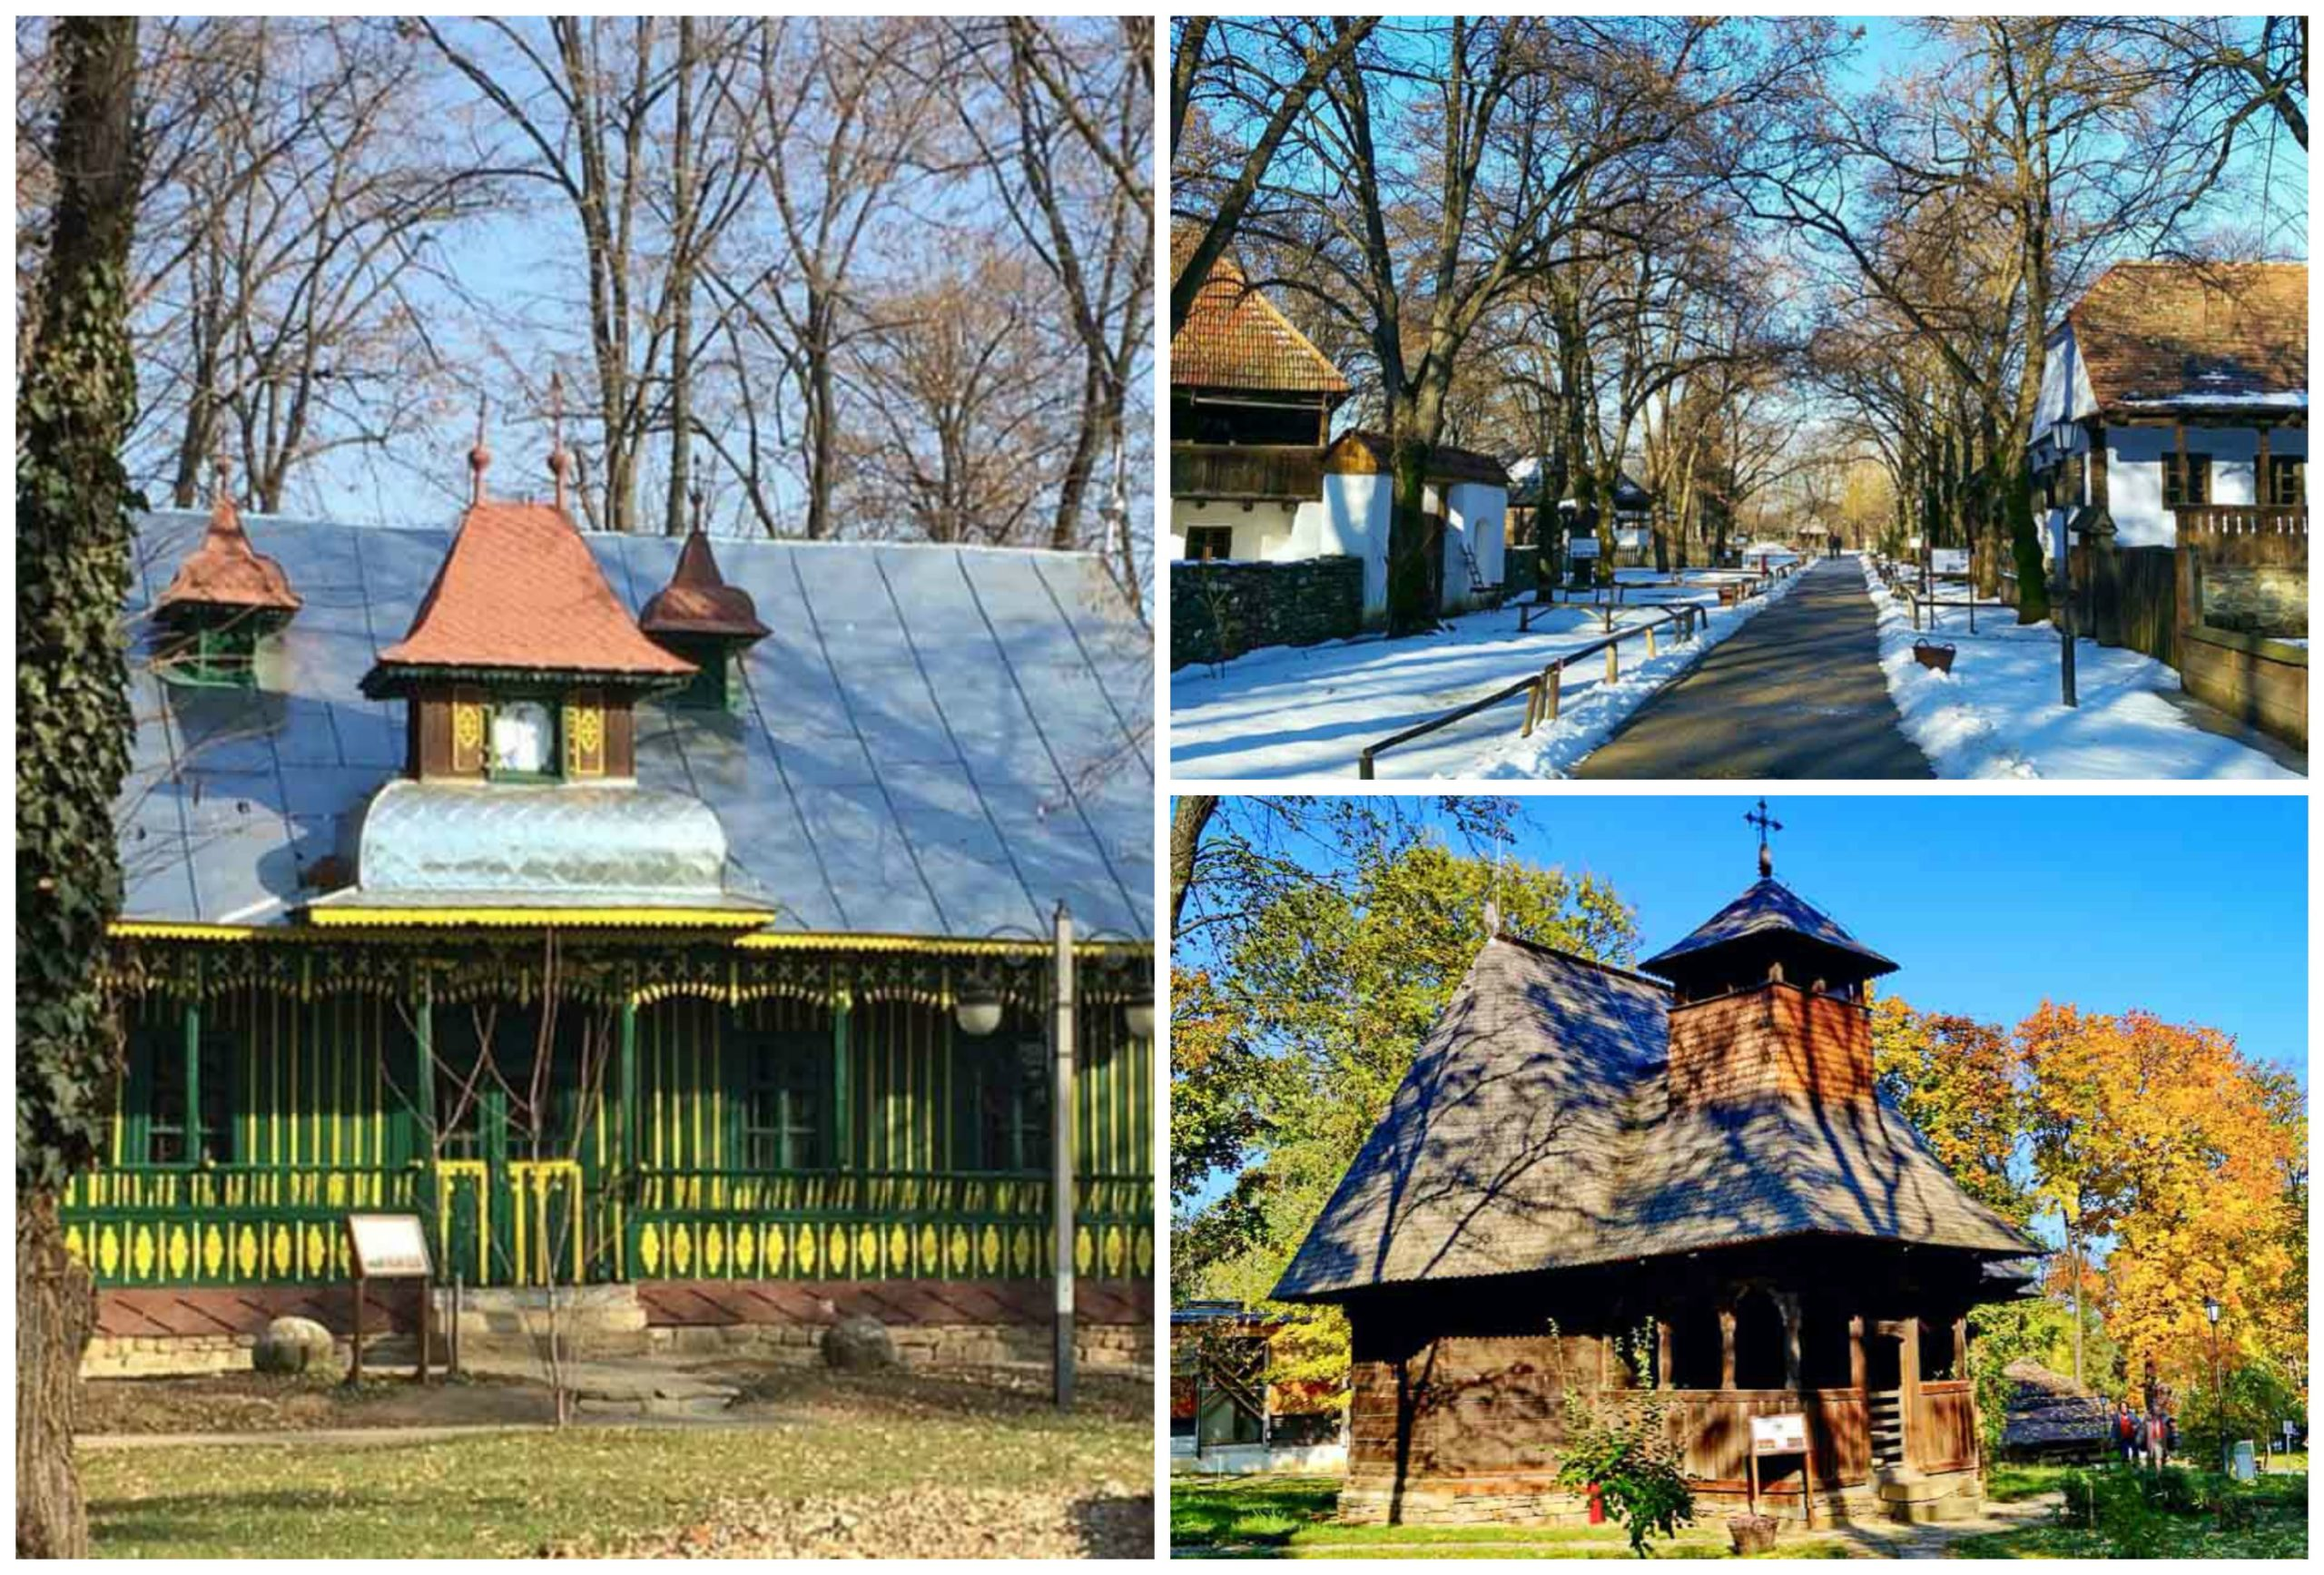 Bucharest Village Museum during different seasons